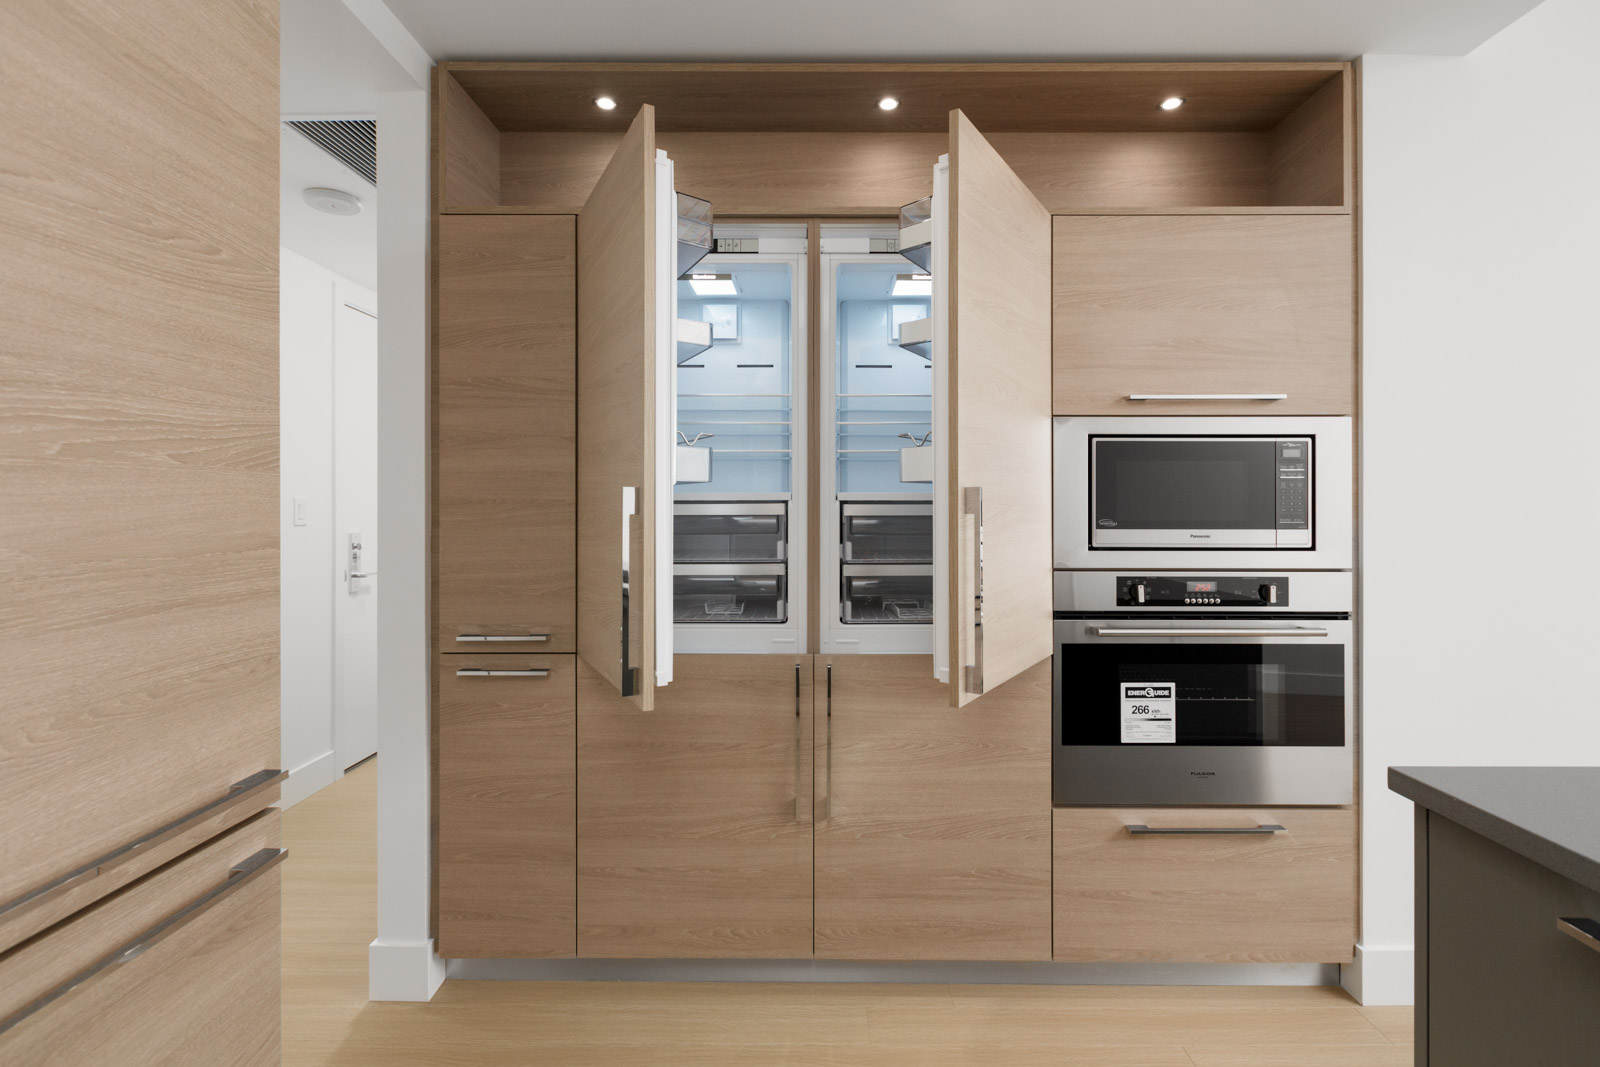 open refrigerator doors in empty brand new condo managed by birds nest properties at kings crossing in burnaby